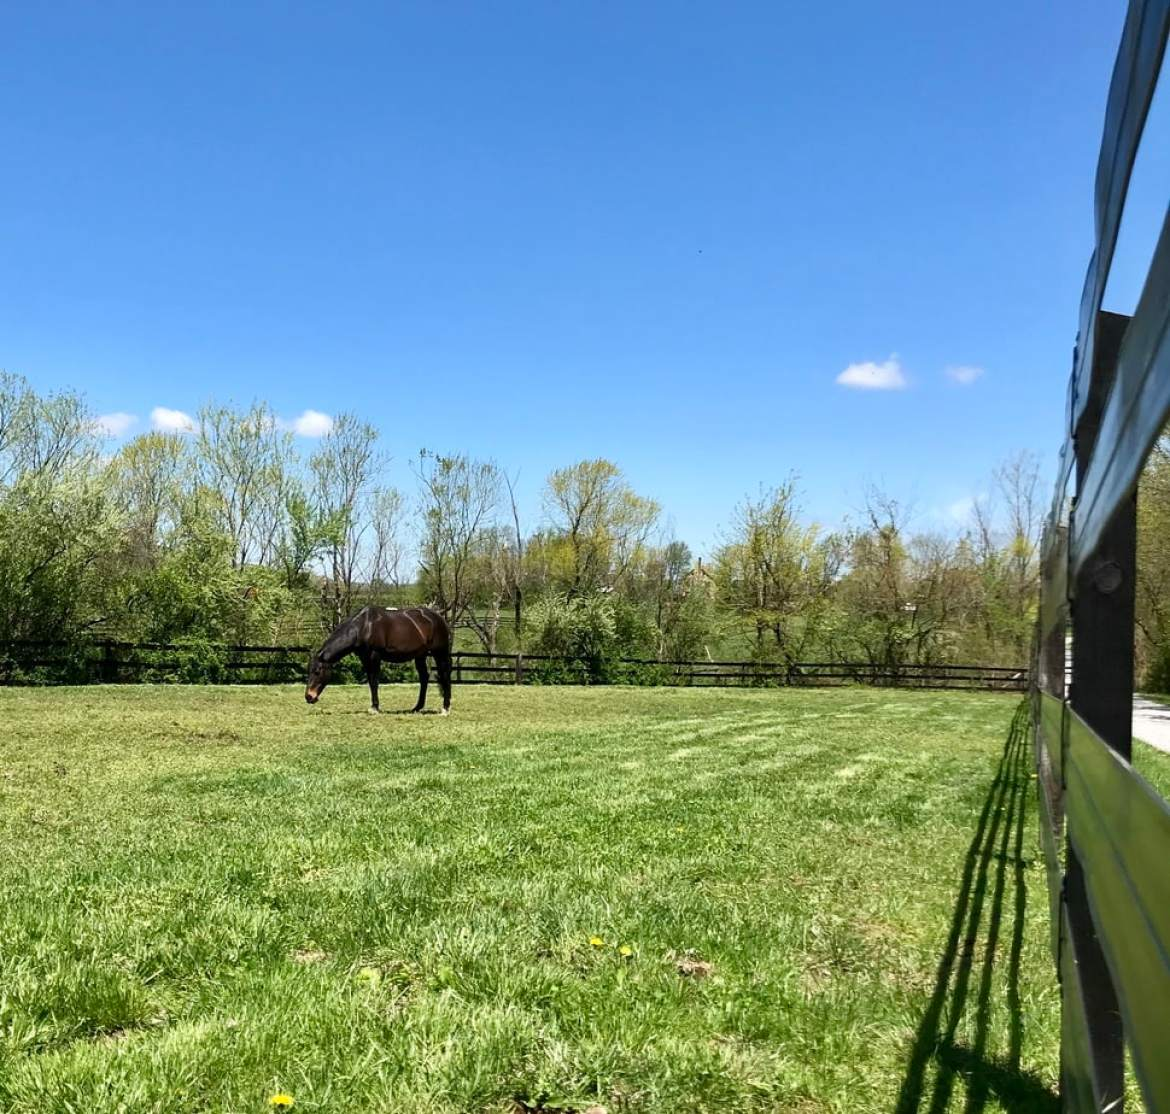 For Sale Loudoun County Horse Farm Below Appraised Value